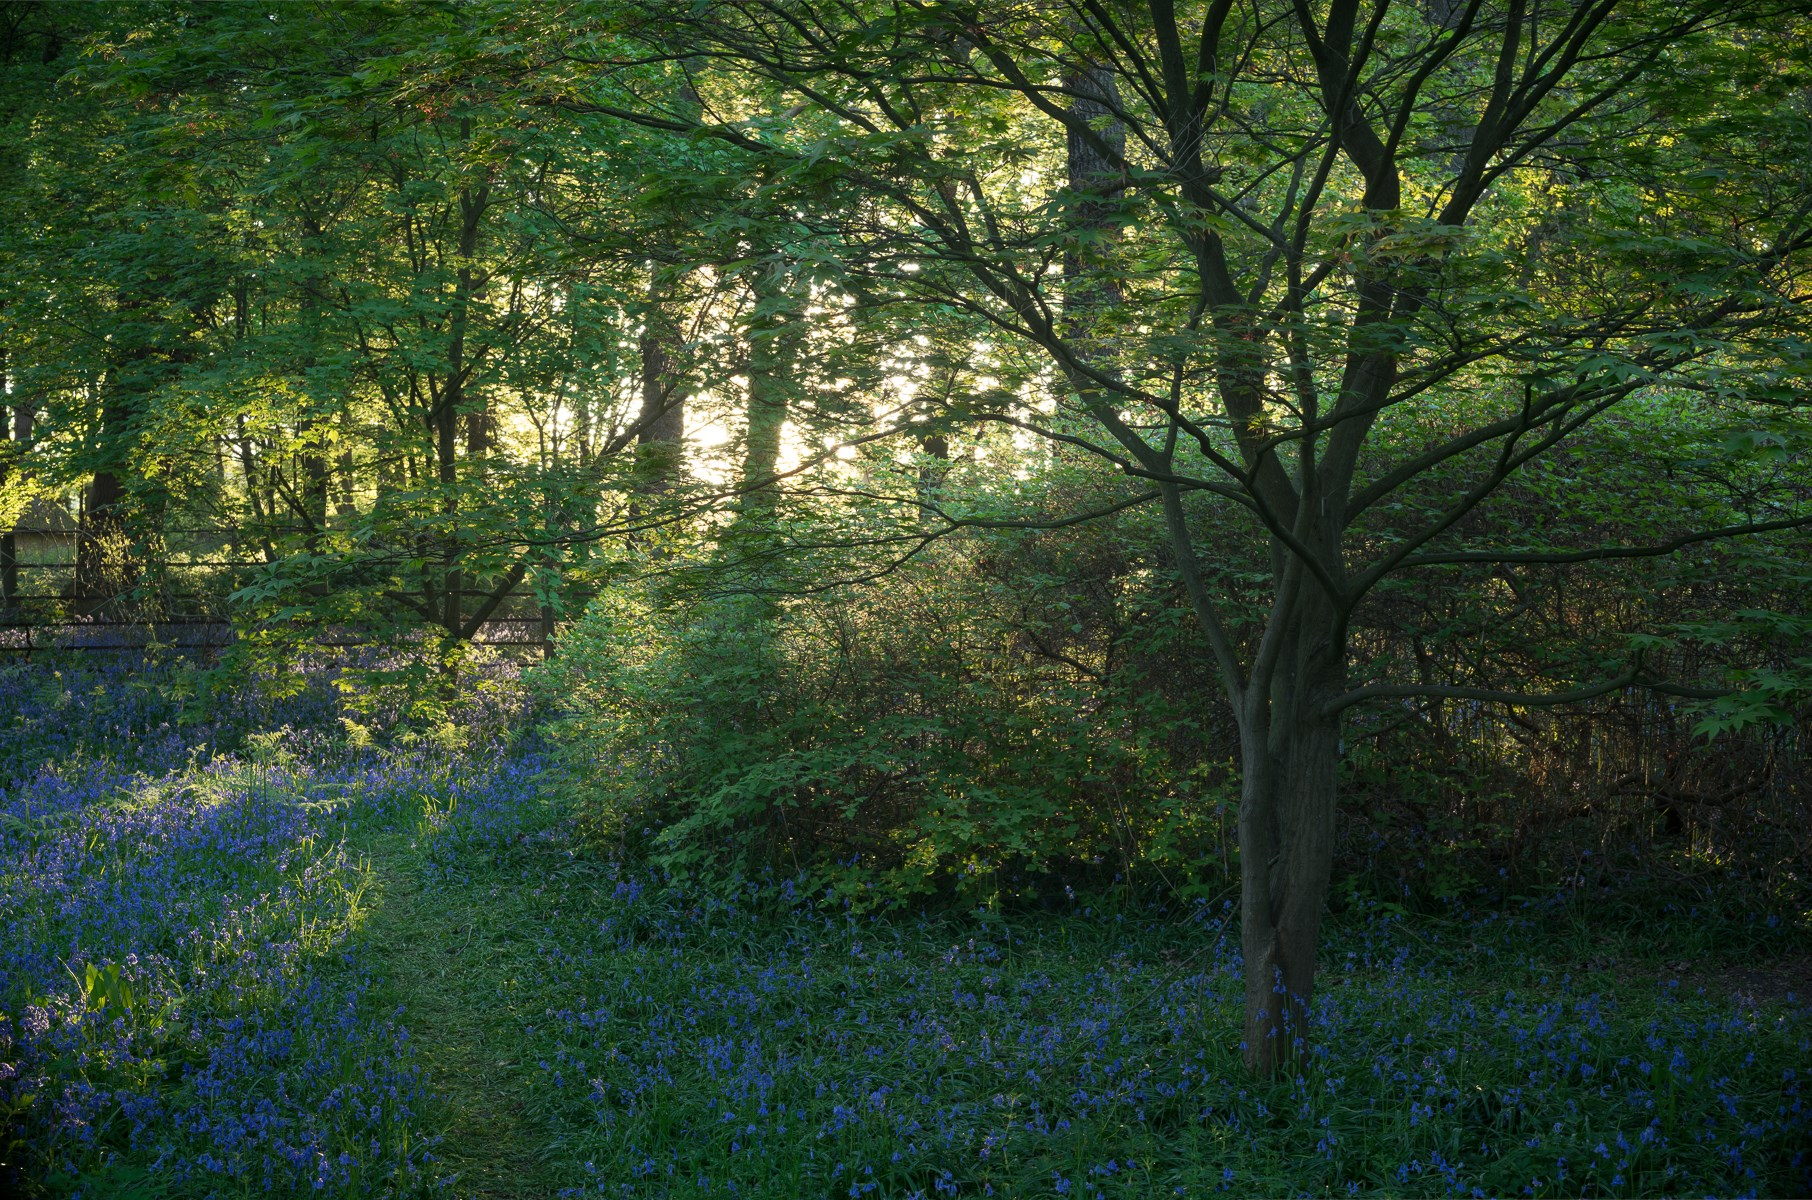 Sunrise and Bluebells, Acer Glade, May 2018